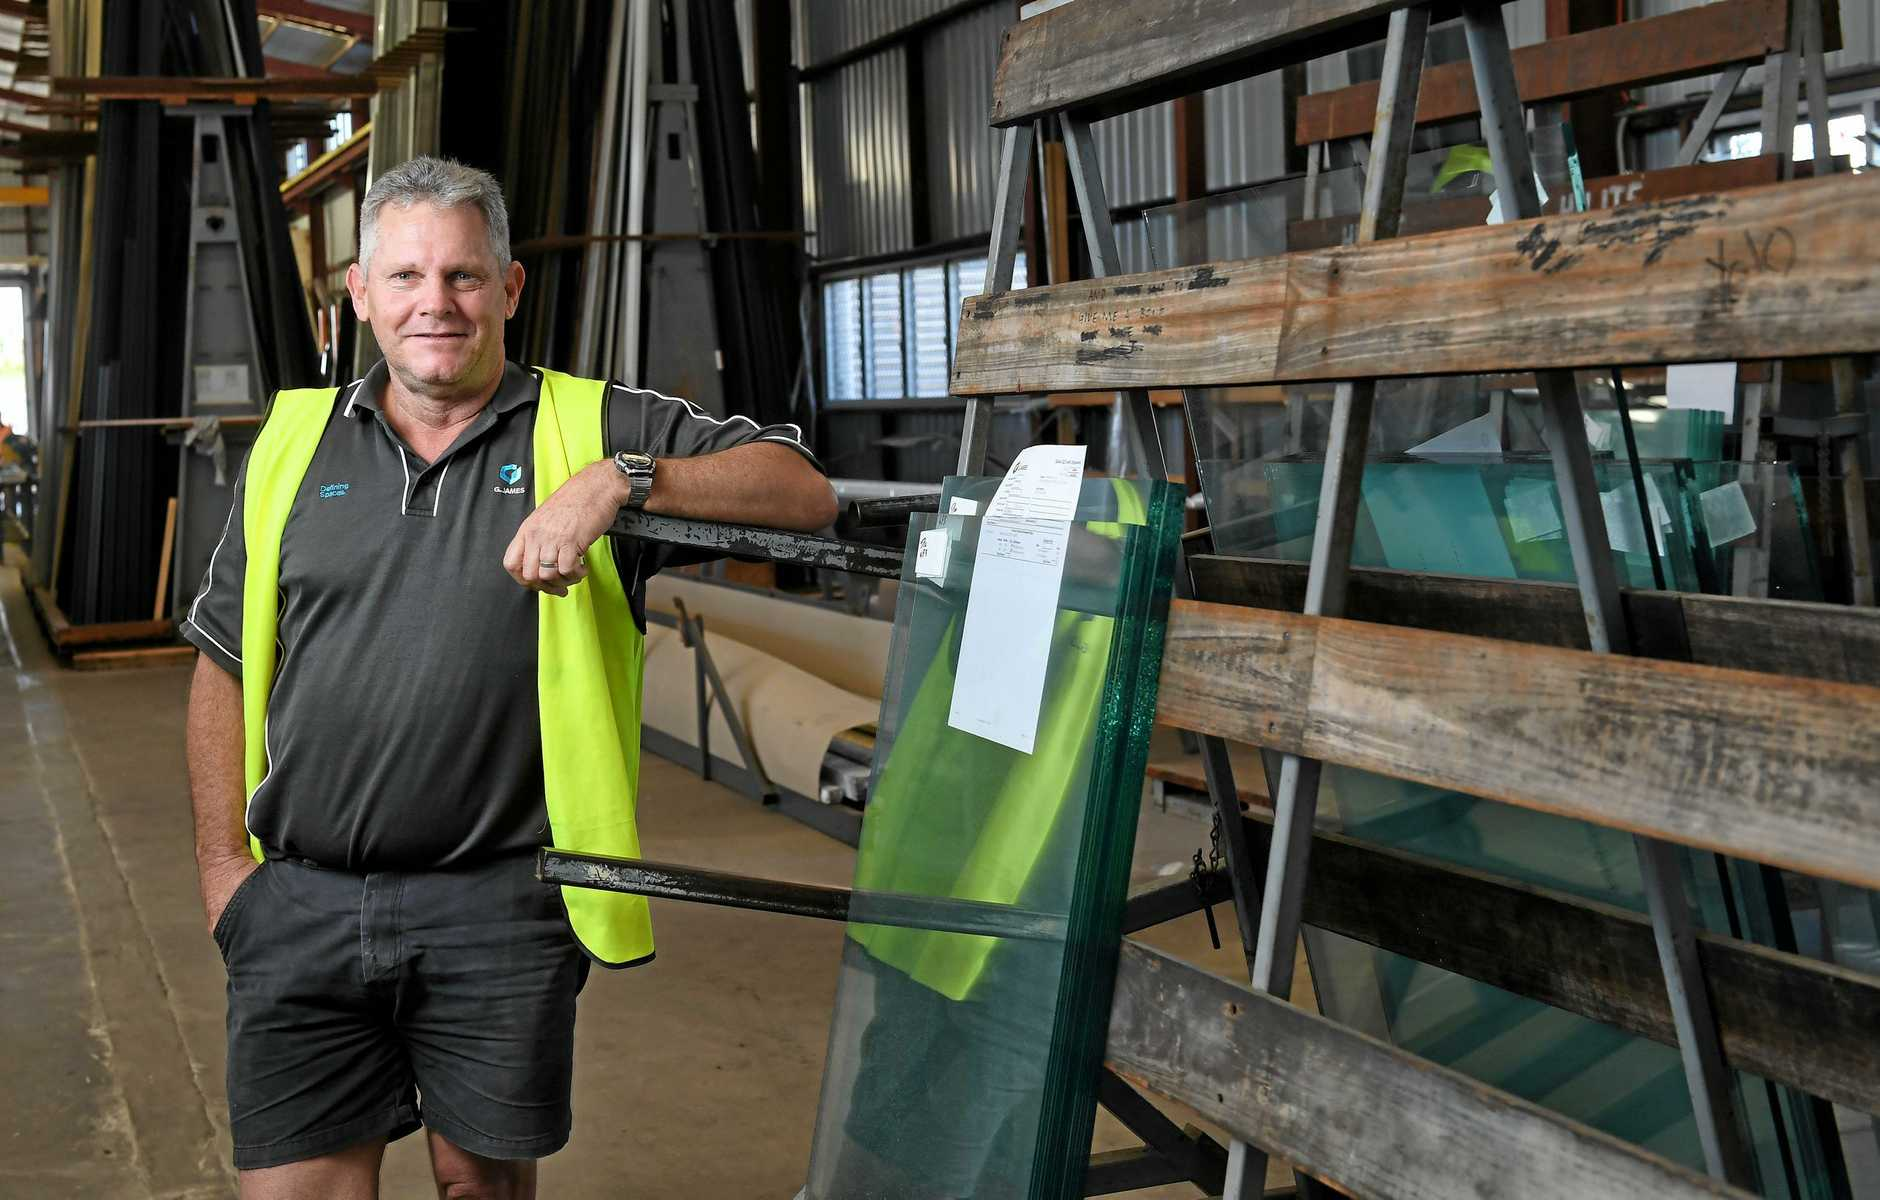 PROUD: Steve Jones was one of the glaziers from G. James who replaced the glass in the Ipswich post office clock tower after the heat from the Reids fire melted the clockface in 1985.